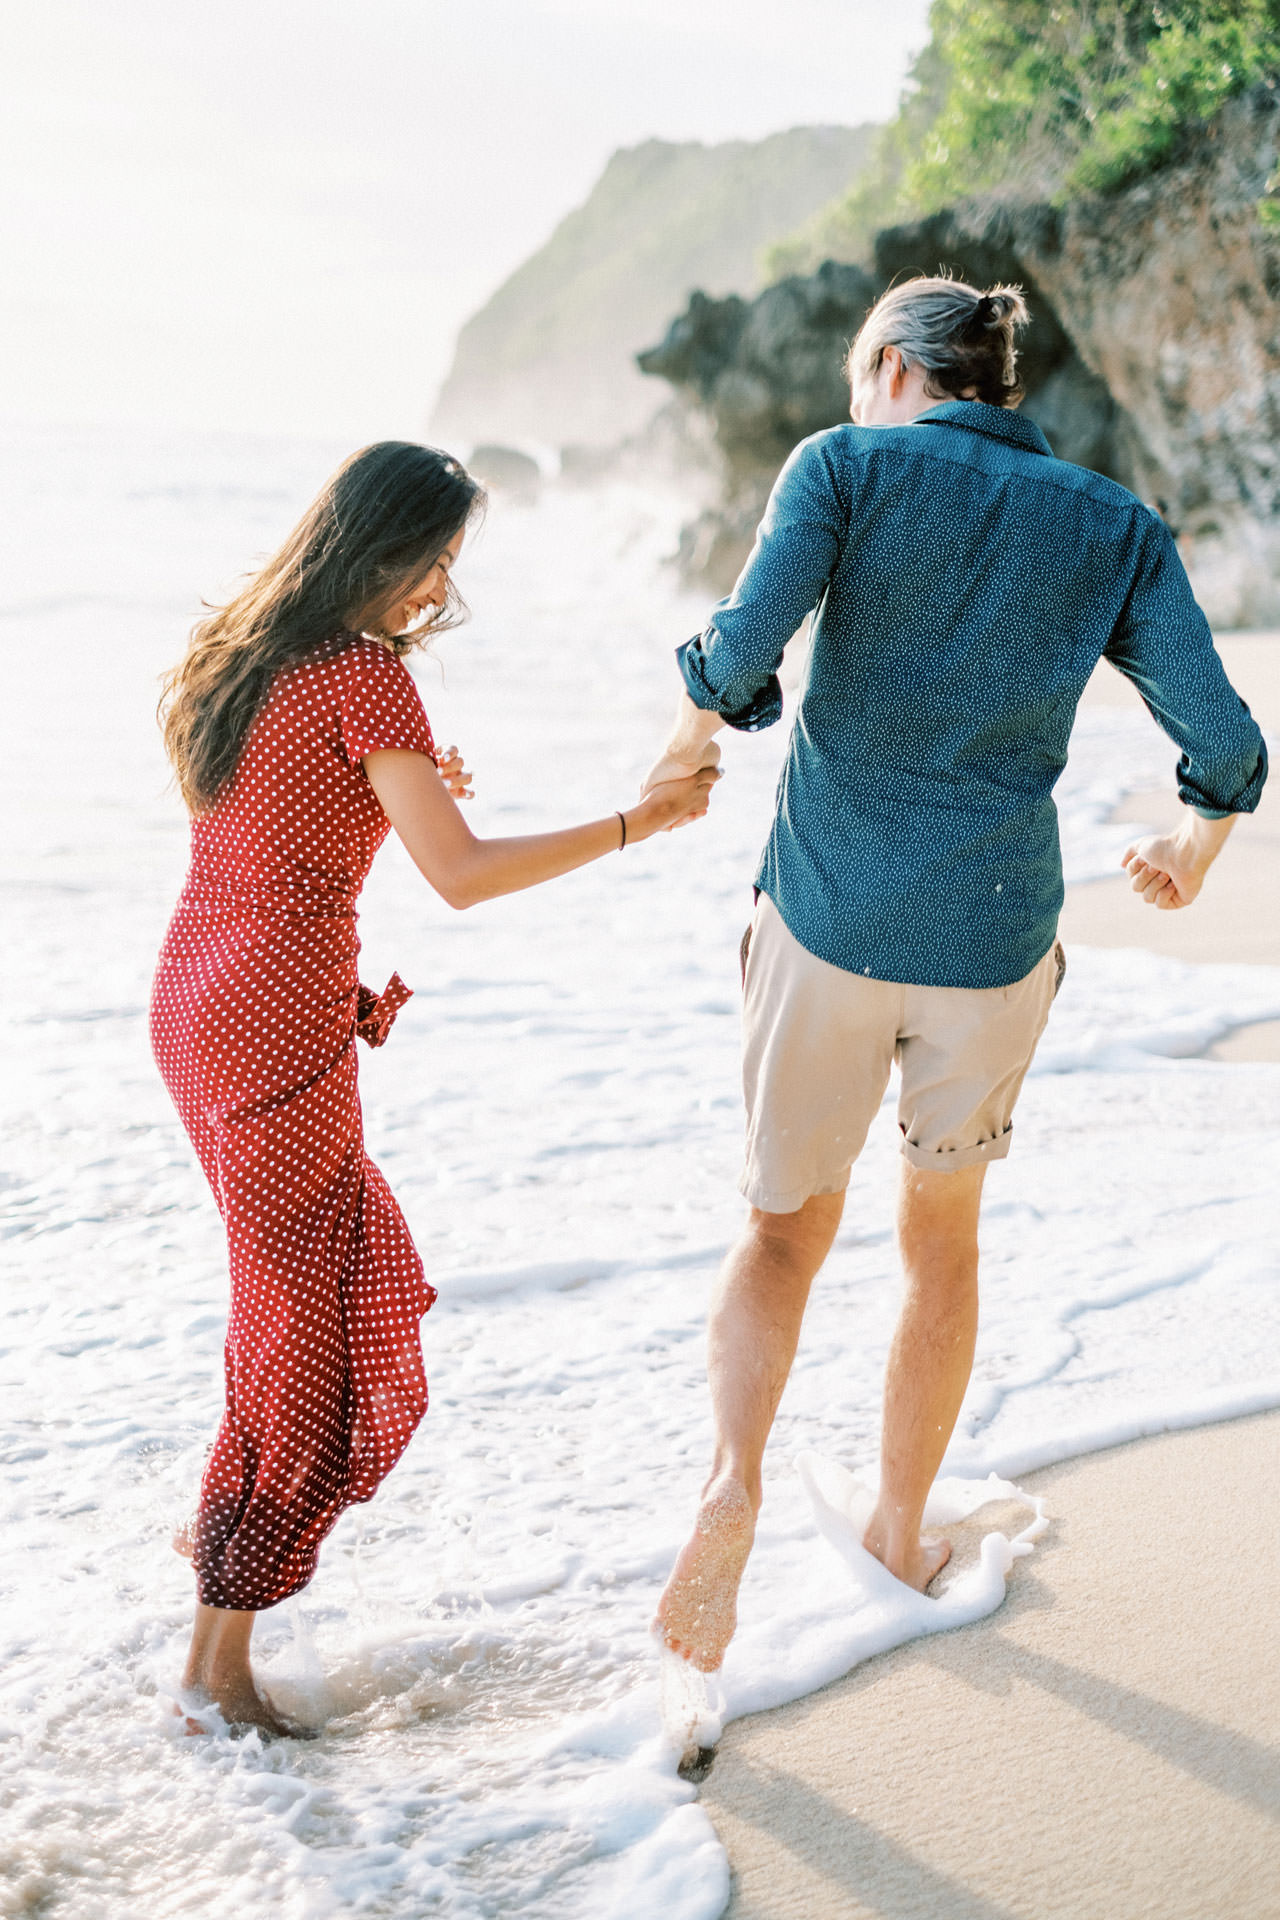 Bali's Beach Marriage Proposal with a Proposal Video! 26